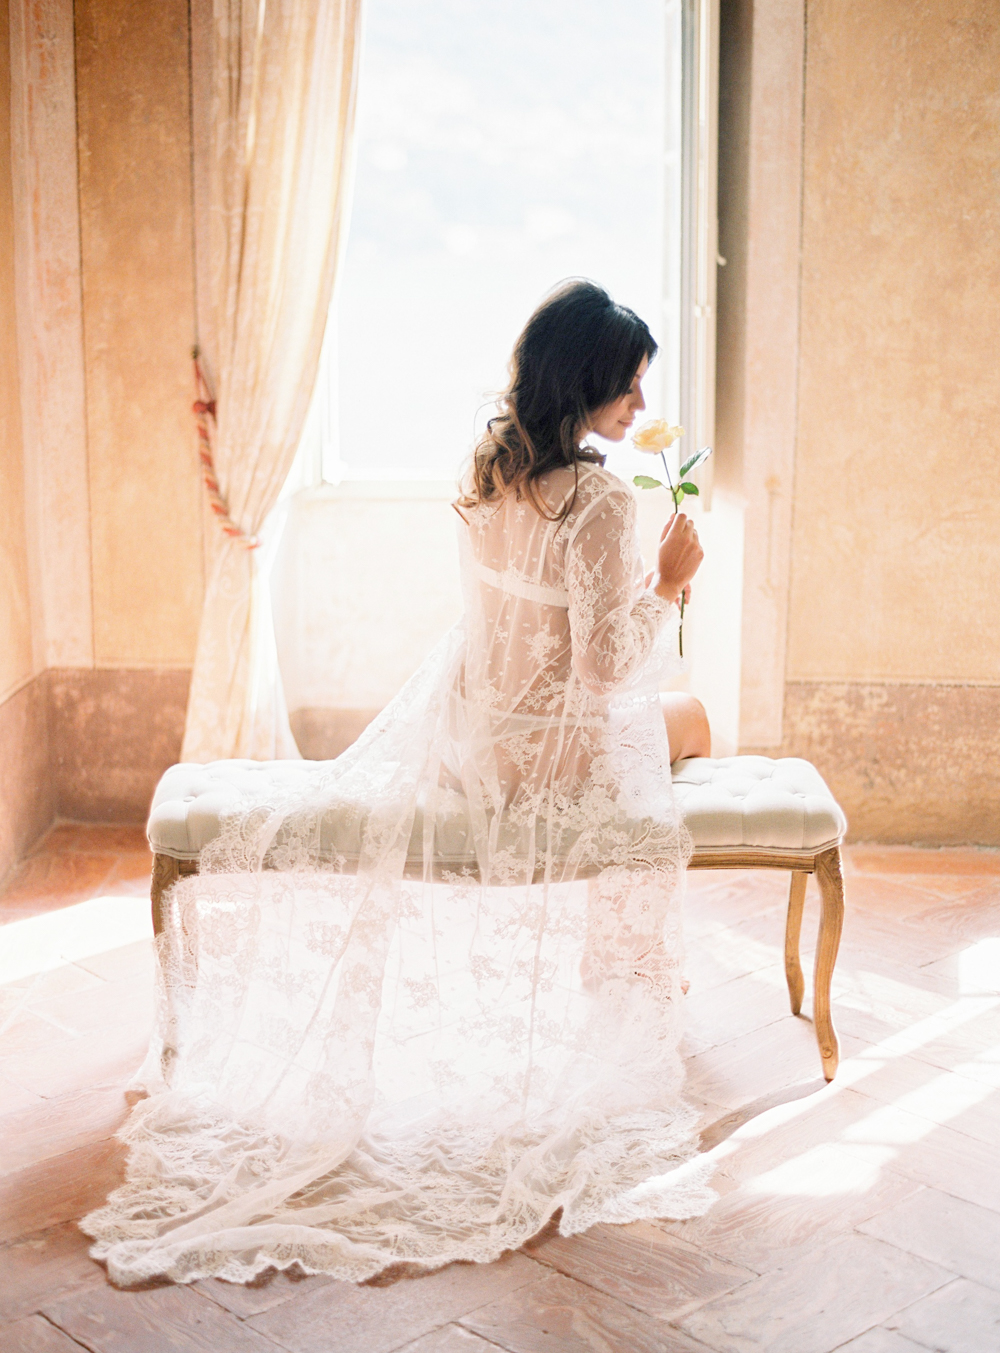 Bride in Lace robe